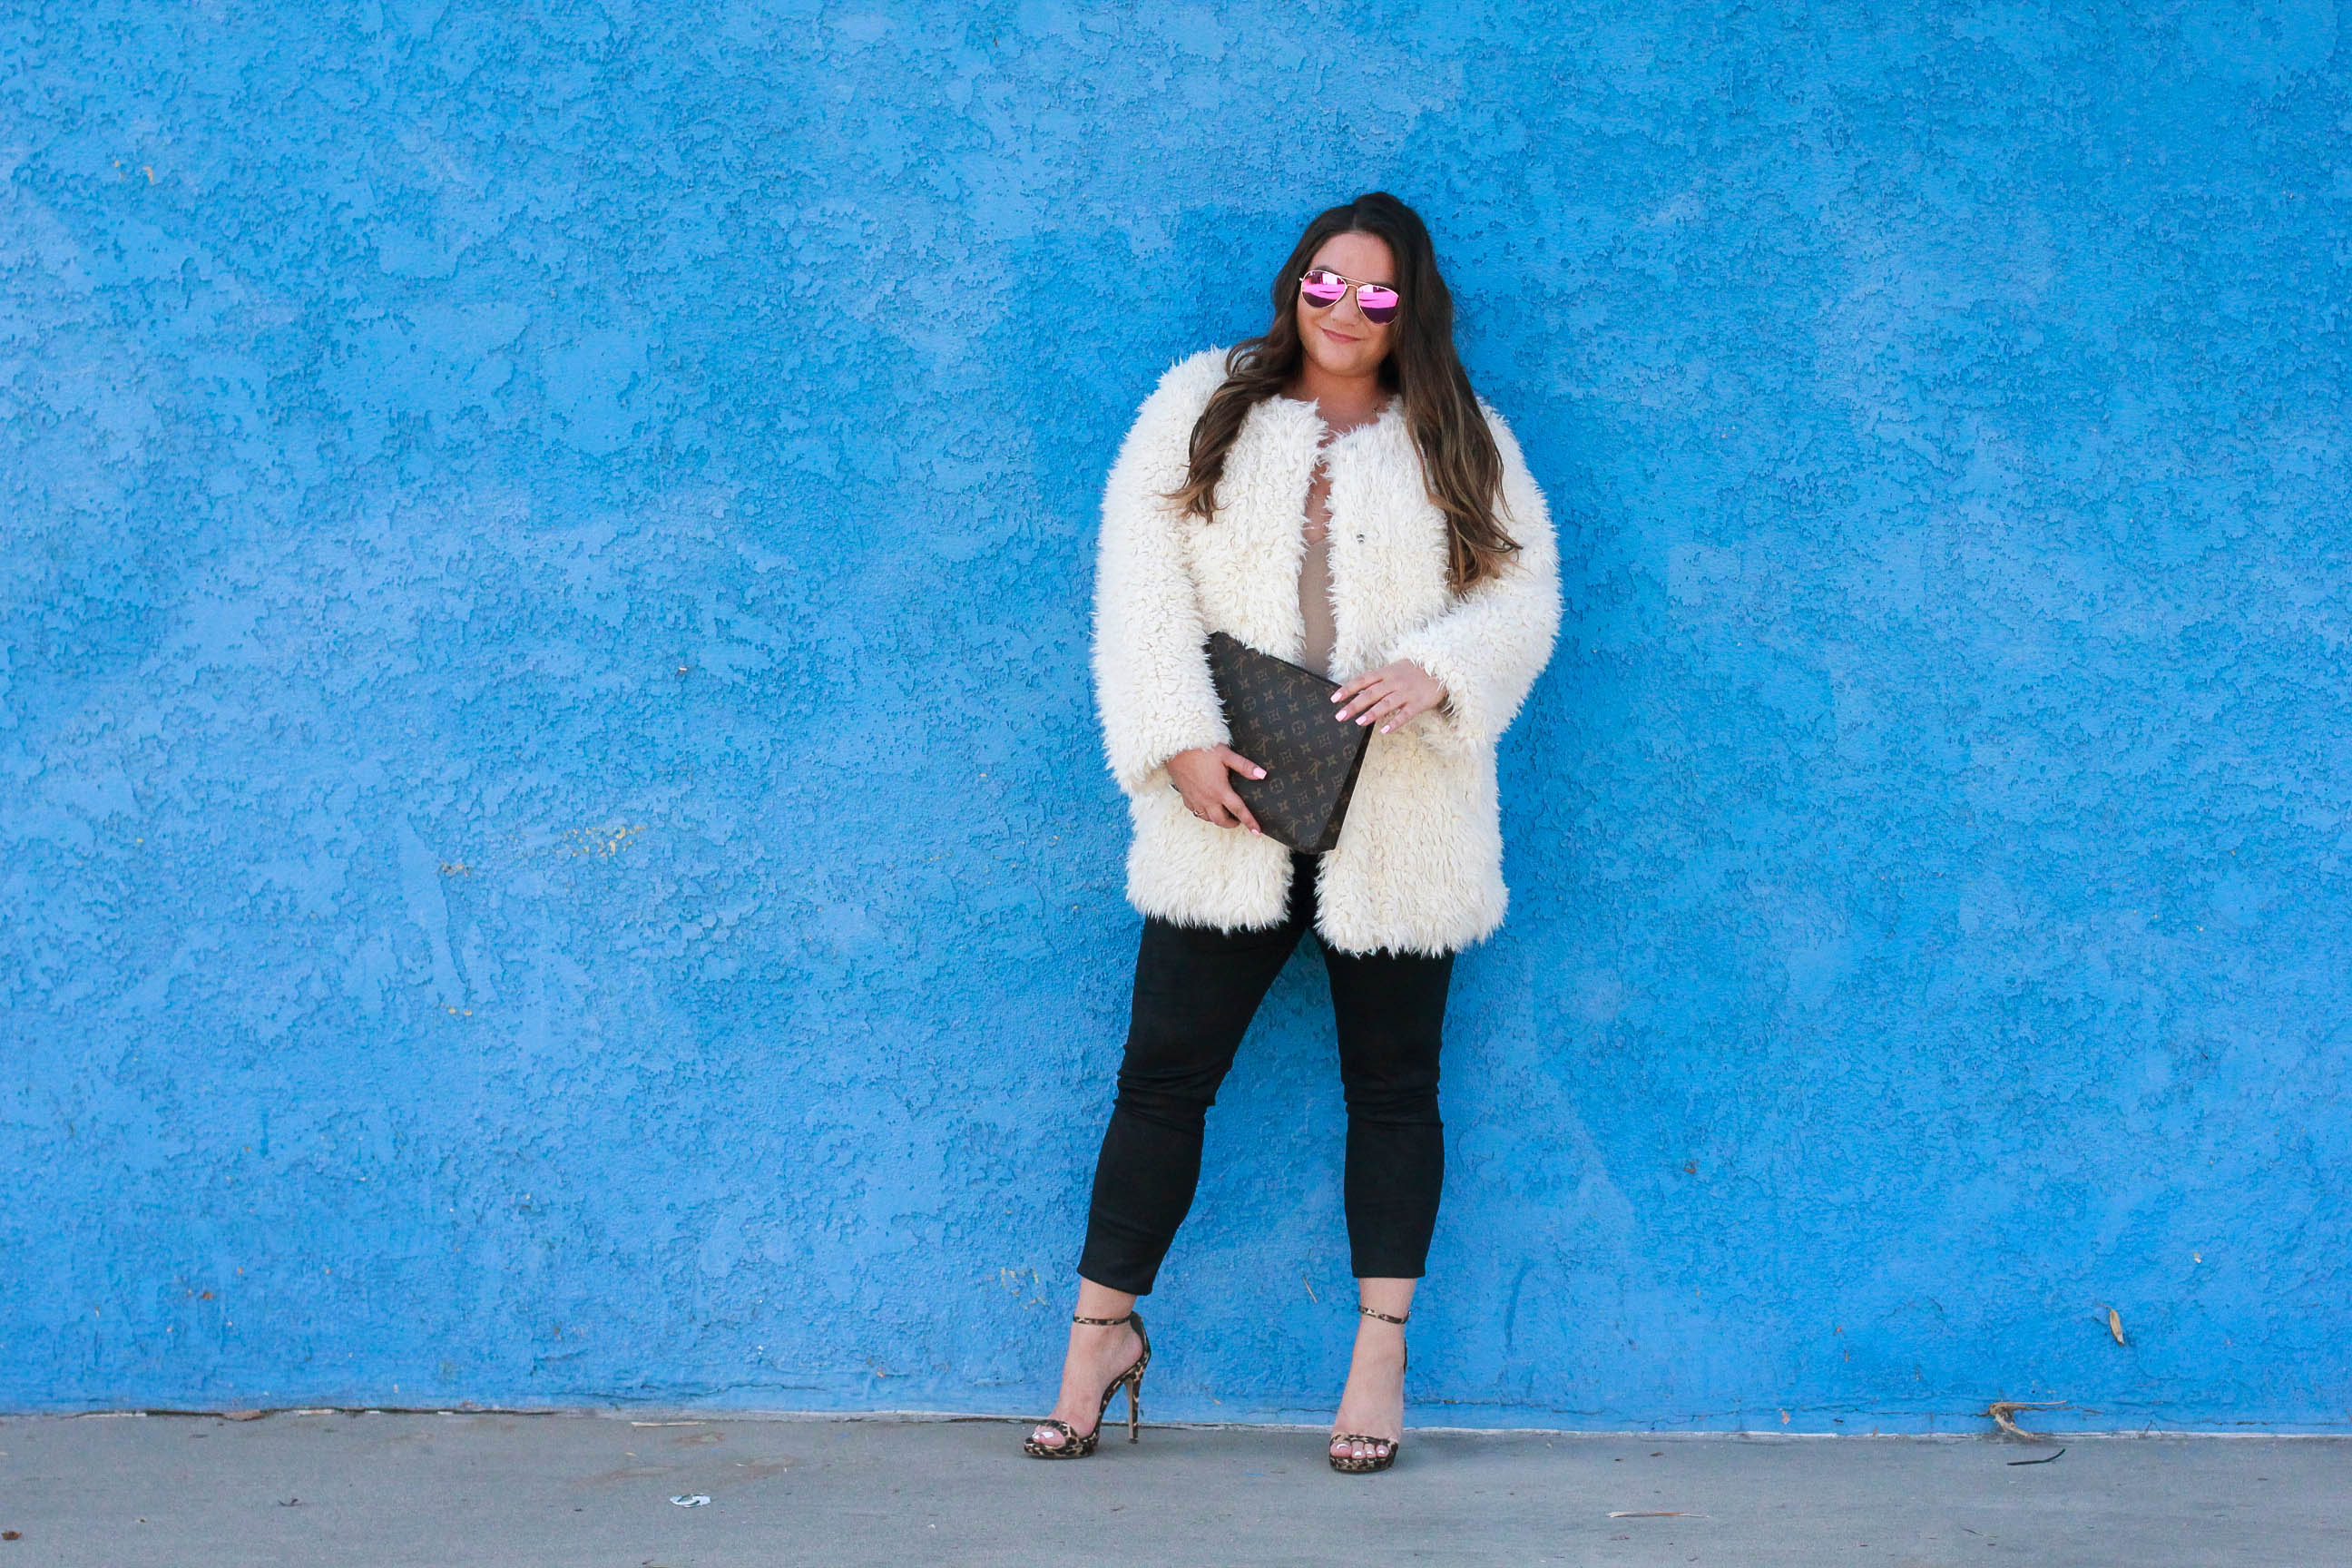 missyonmadison, missyonmadison blog, missyonmadison instagram, fashion blog, fashion blogger, white fuzzy coat, white coat, kendall and kylie coat, kendall and kylie fuzzy coat, leopard ankle strap sandals, leopard heels, leopard ankle strap heels, spanx, spanx leggings, spanx leather leggings, diff eyewear, diff eyewear pink aviators, pink aviators, bloglovin, la blogger, style blog, style blogger, melissa tierney, winter style, winter style inspo, winter outfit ideas, date night outfit, shaggy coat, fuzzy coat, teddy bear coat, v neck body suit, nude v neck body suit, louis vuitton clutch, louis vuitton toiletry pouch 26, louis vuitton toiletry pouch, style inspo,